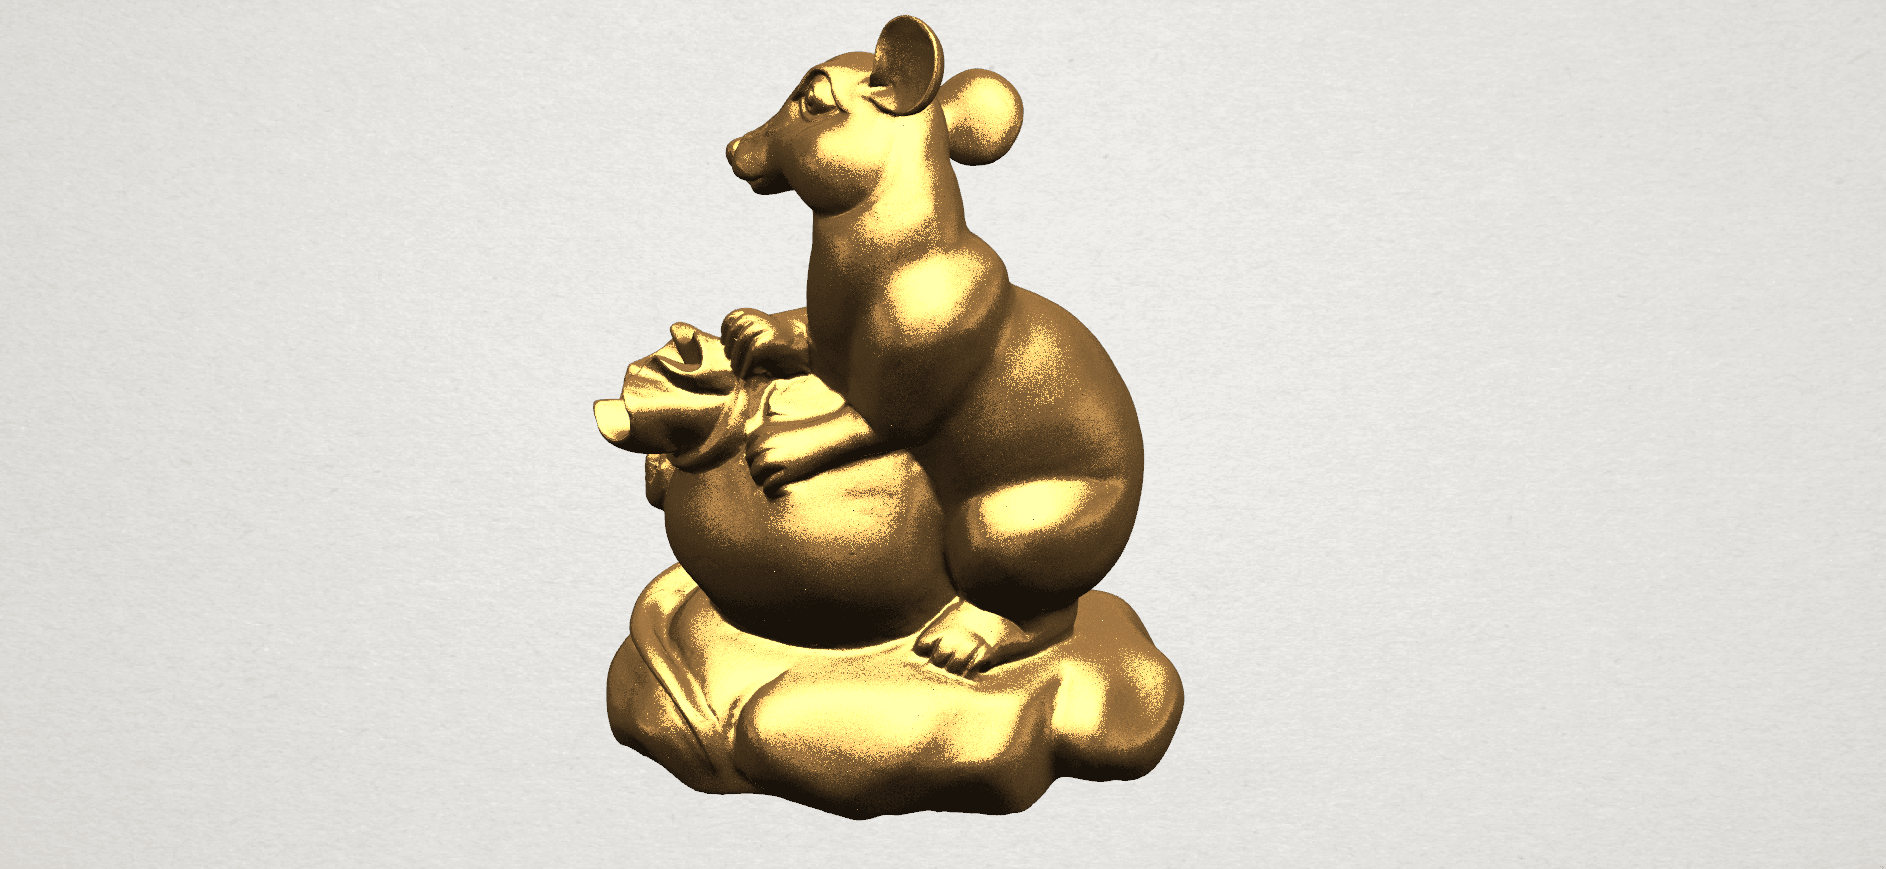 Chinese Horoscope01-02.png Download free STL file Chinese Horoscope 01 Rat • 3D printing object, GeorgesNikkei